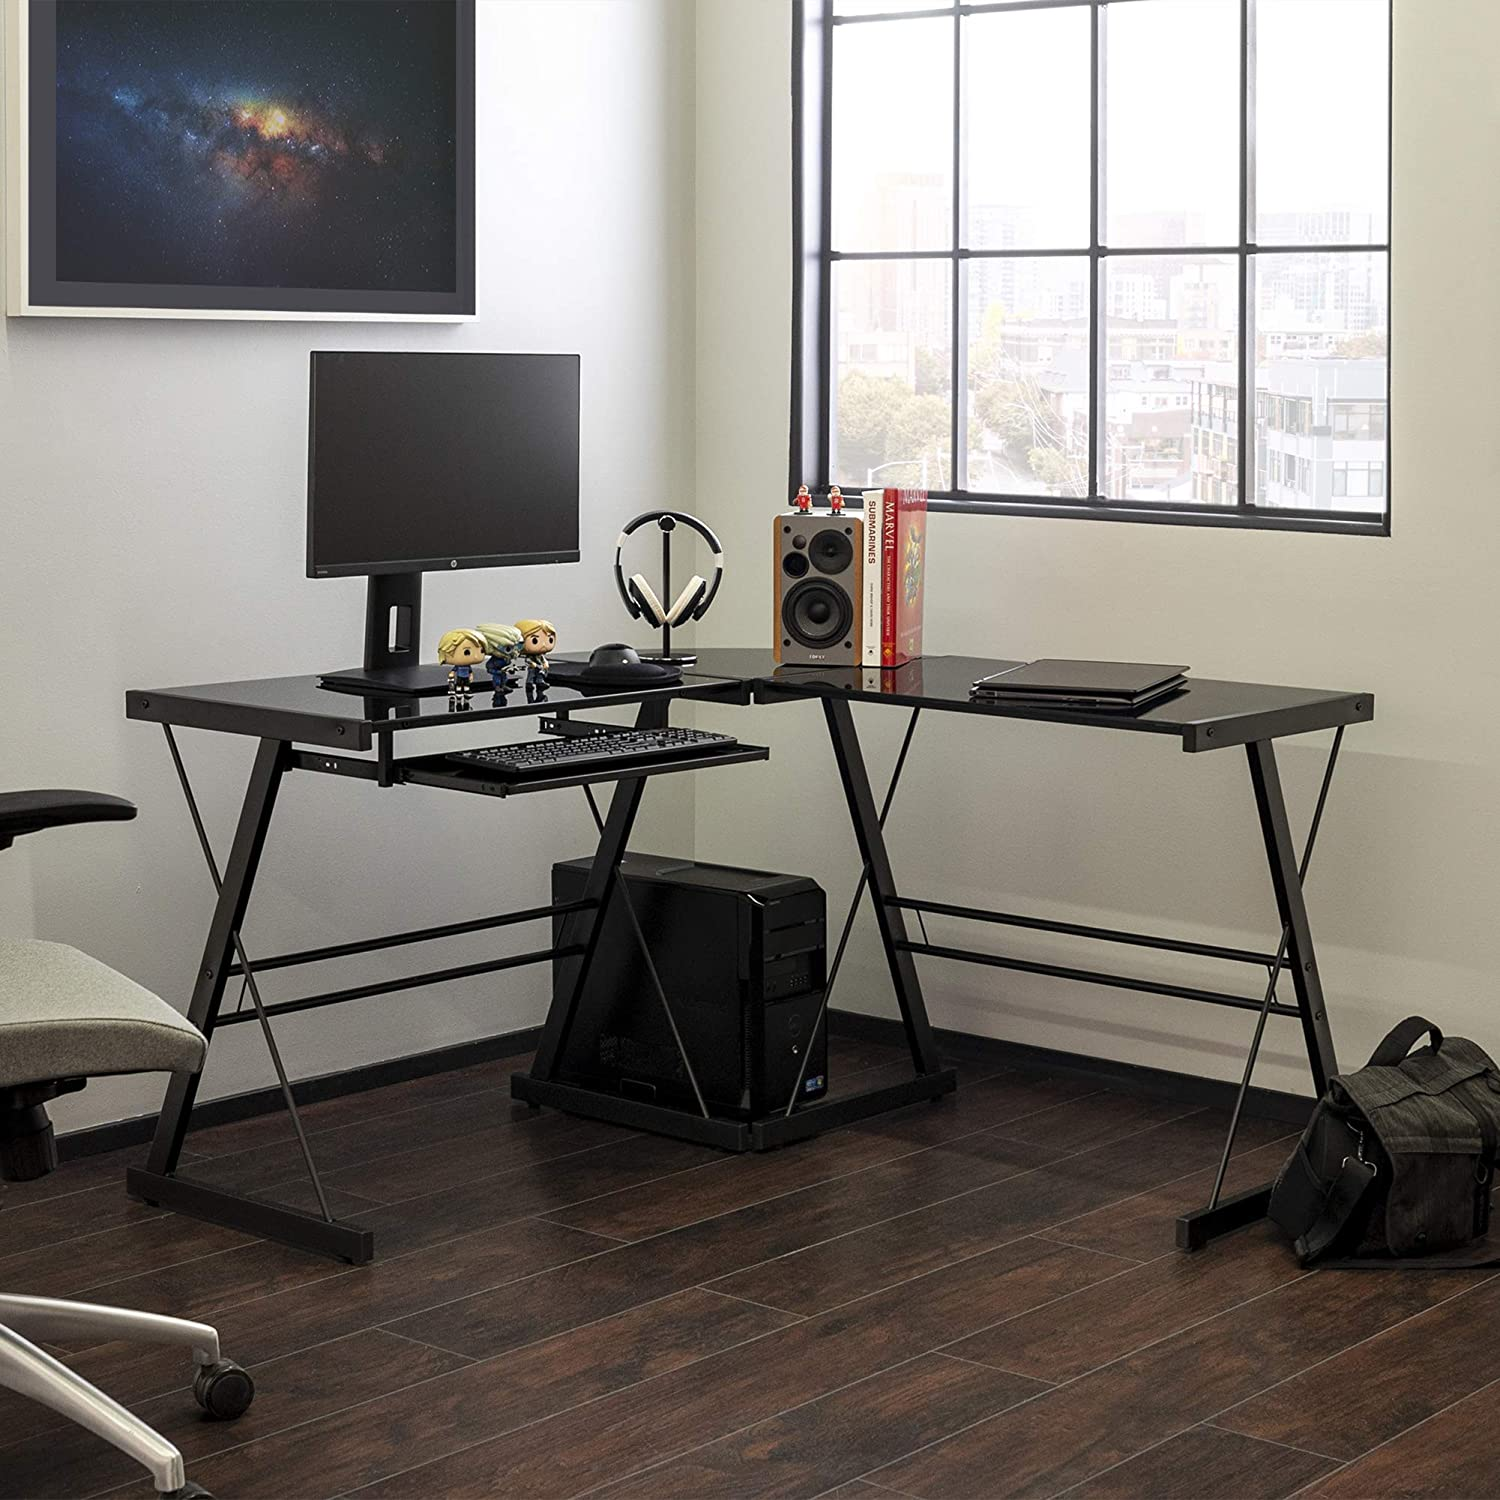 813eJ195UnL. AC SL1500 Best Desk for 3 Monitors - 8 Great Products and Reviews ([year])